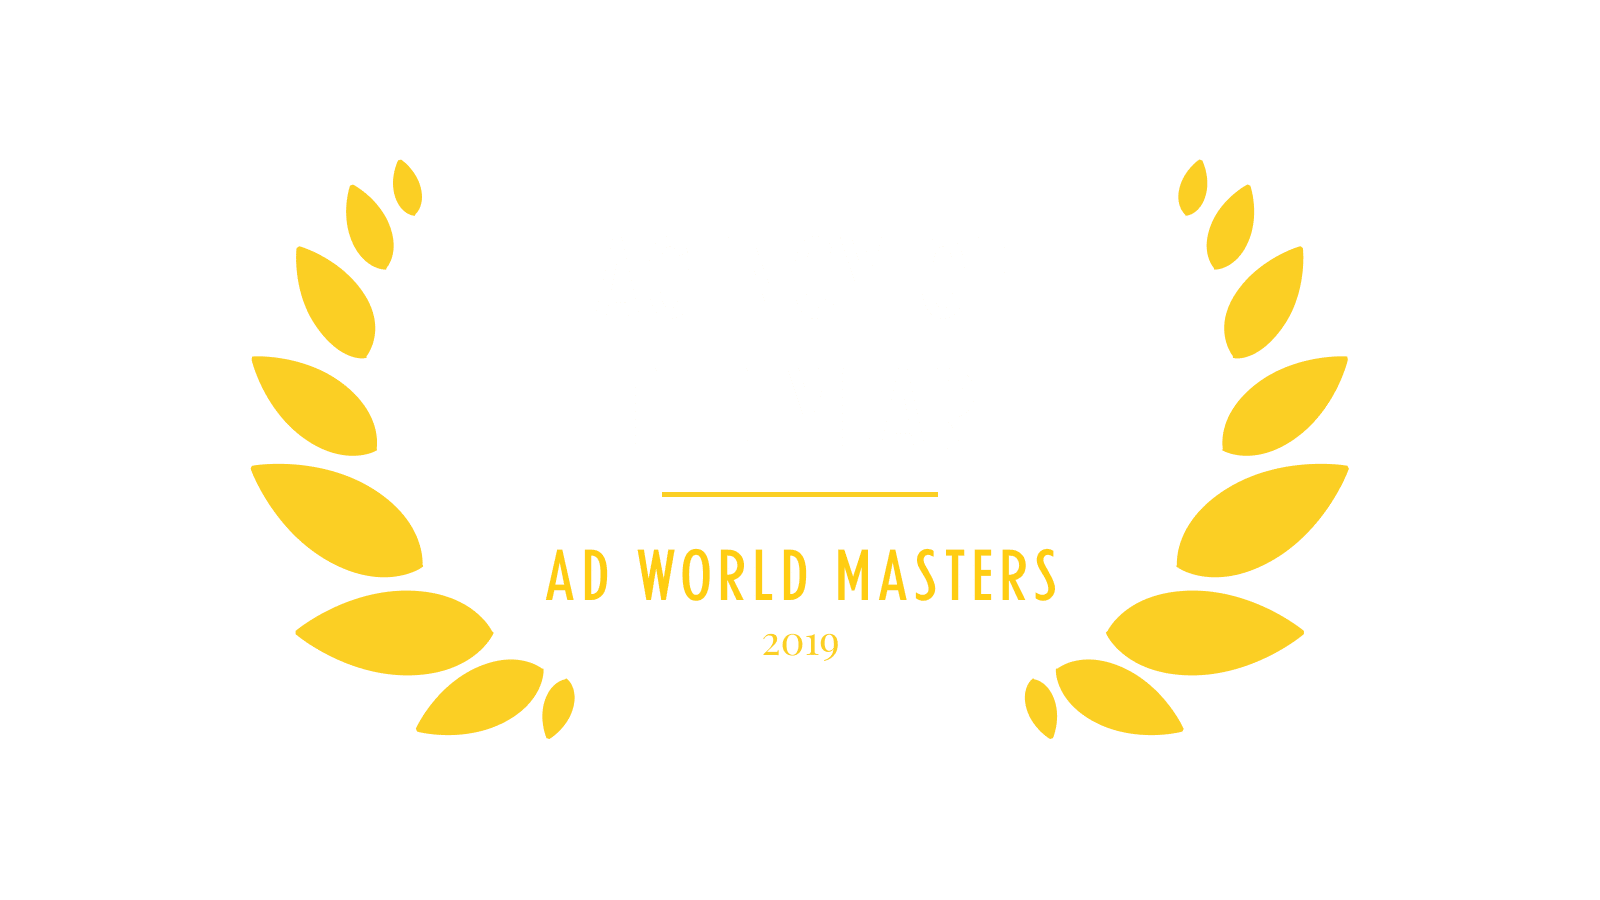 agency-of-the-year-berlin-germany